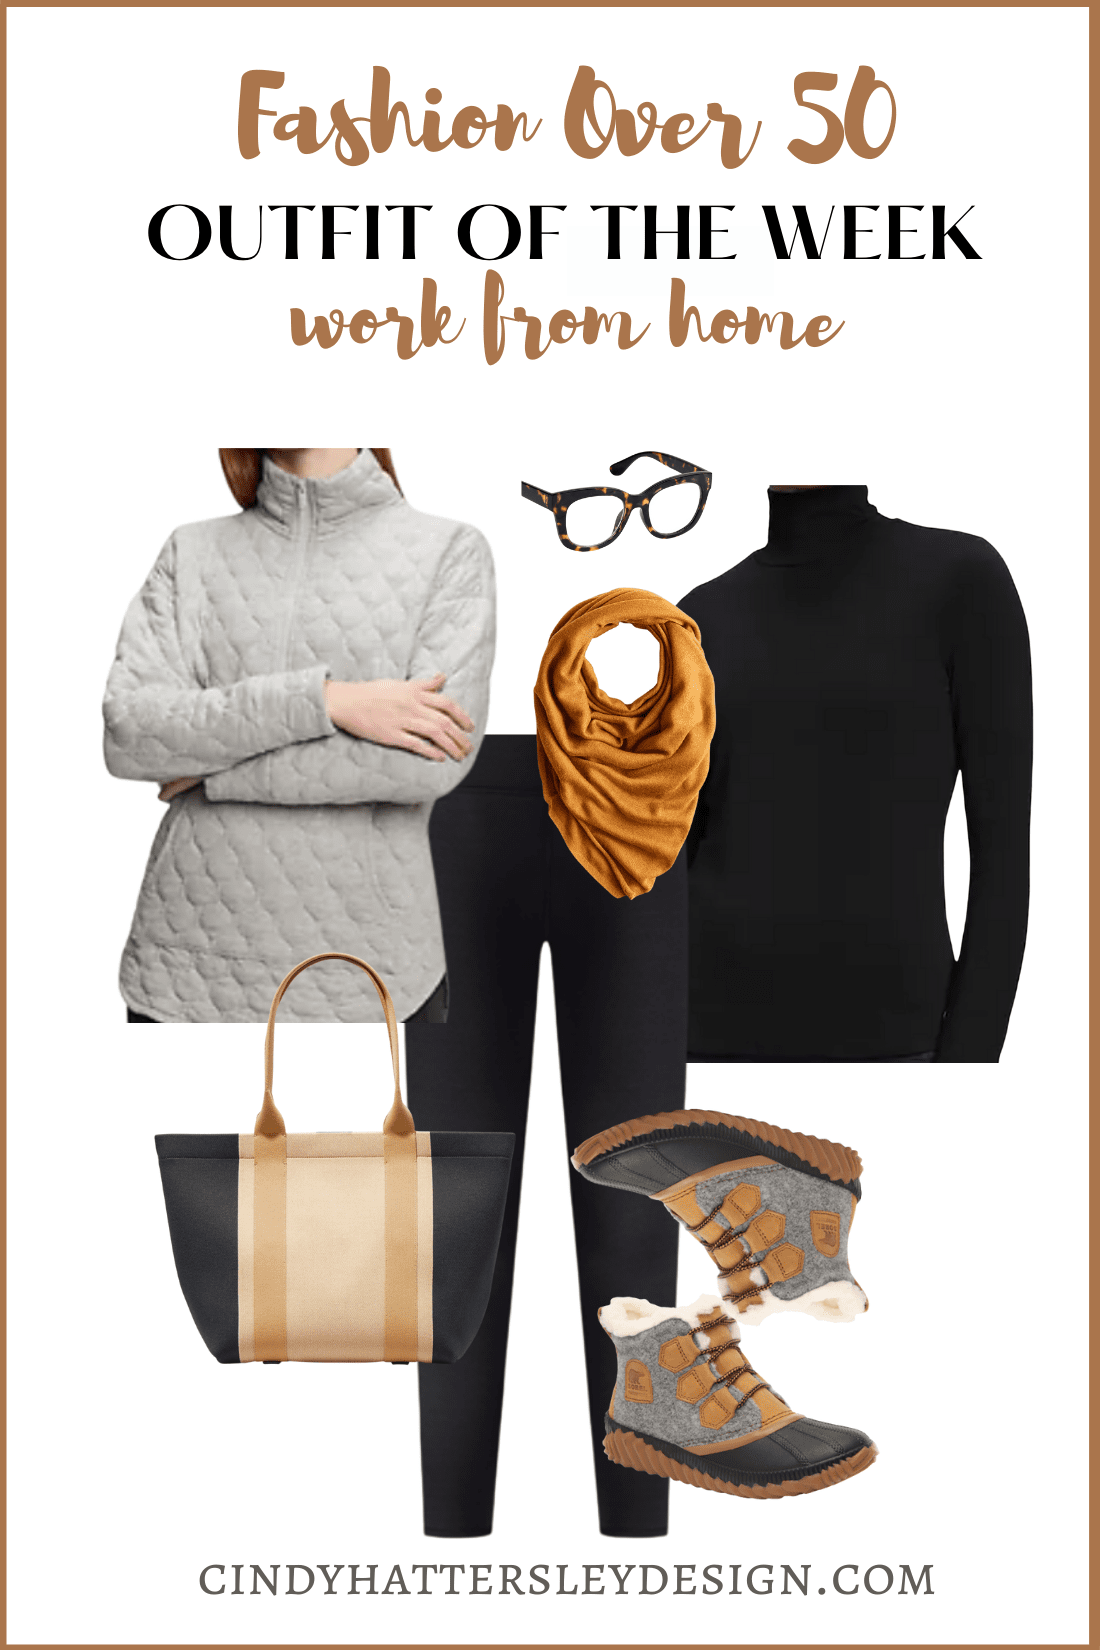 OUFIT OF THE WEEK WORKING FROM HOME